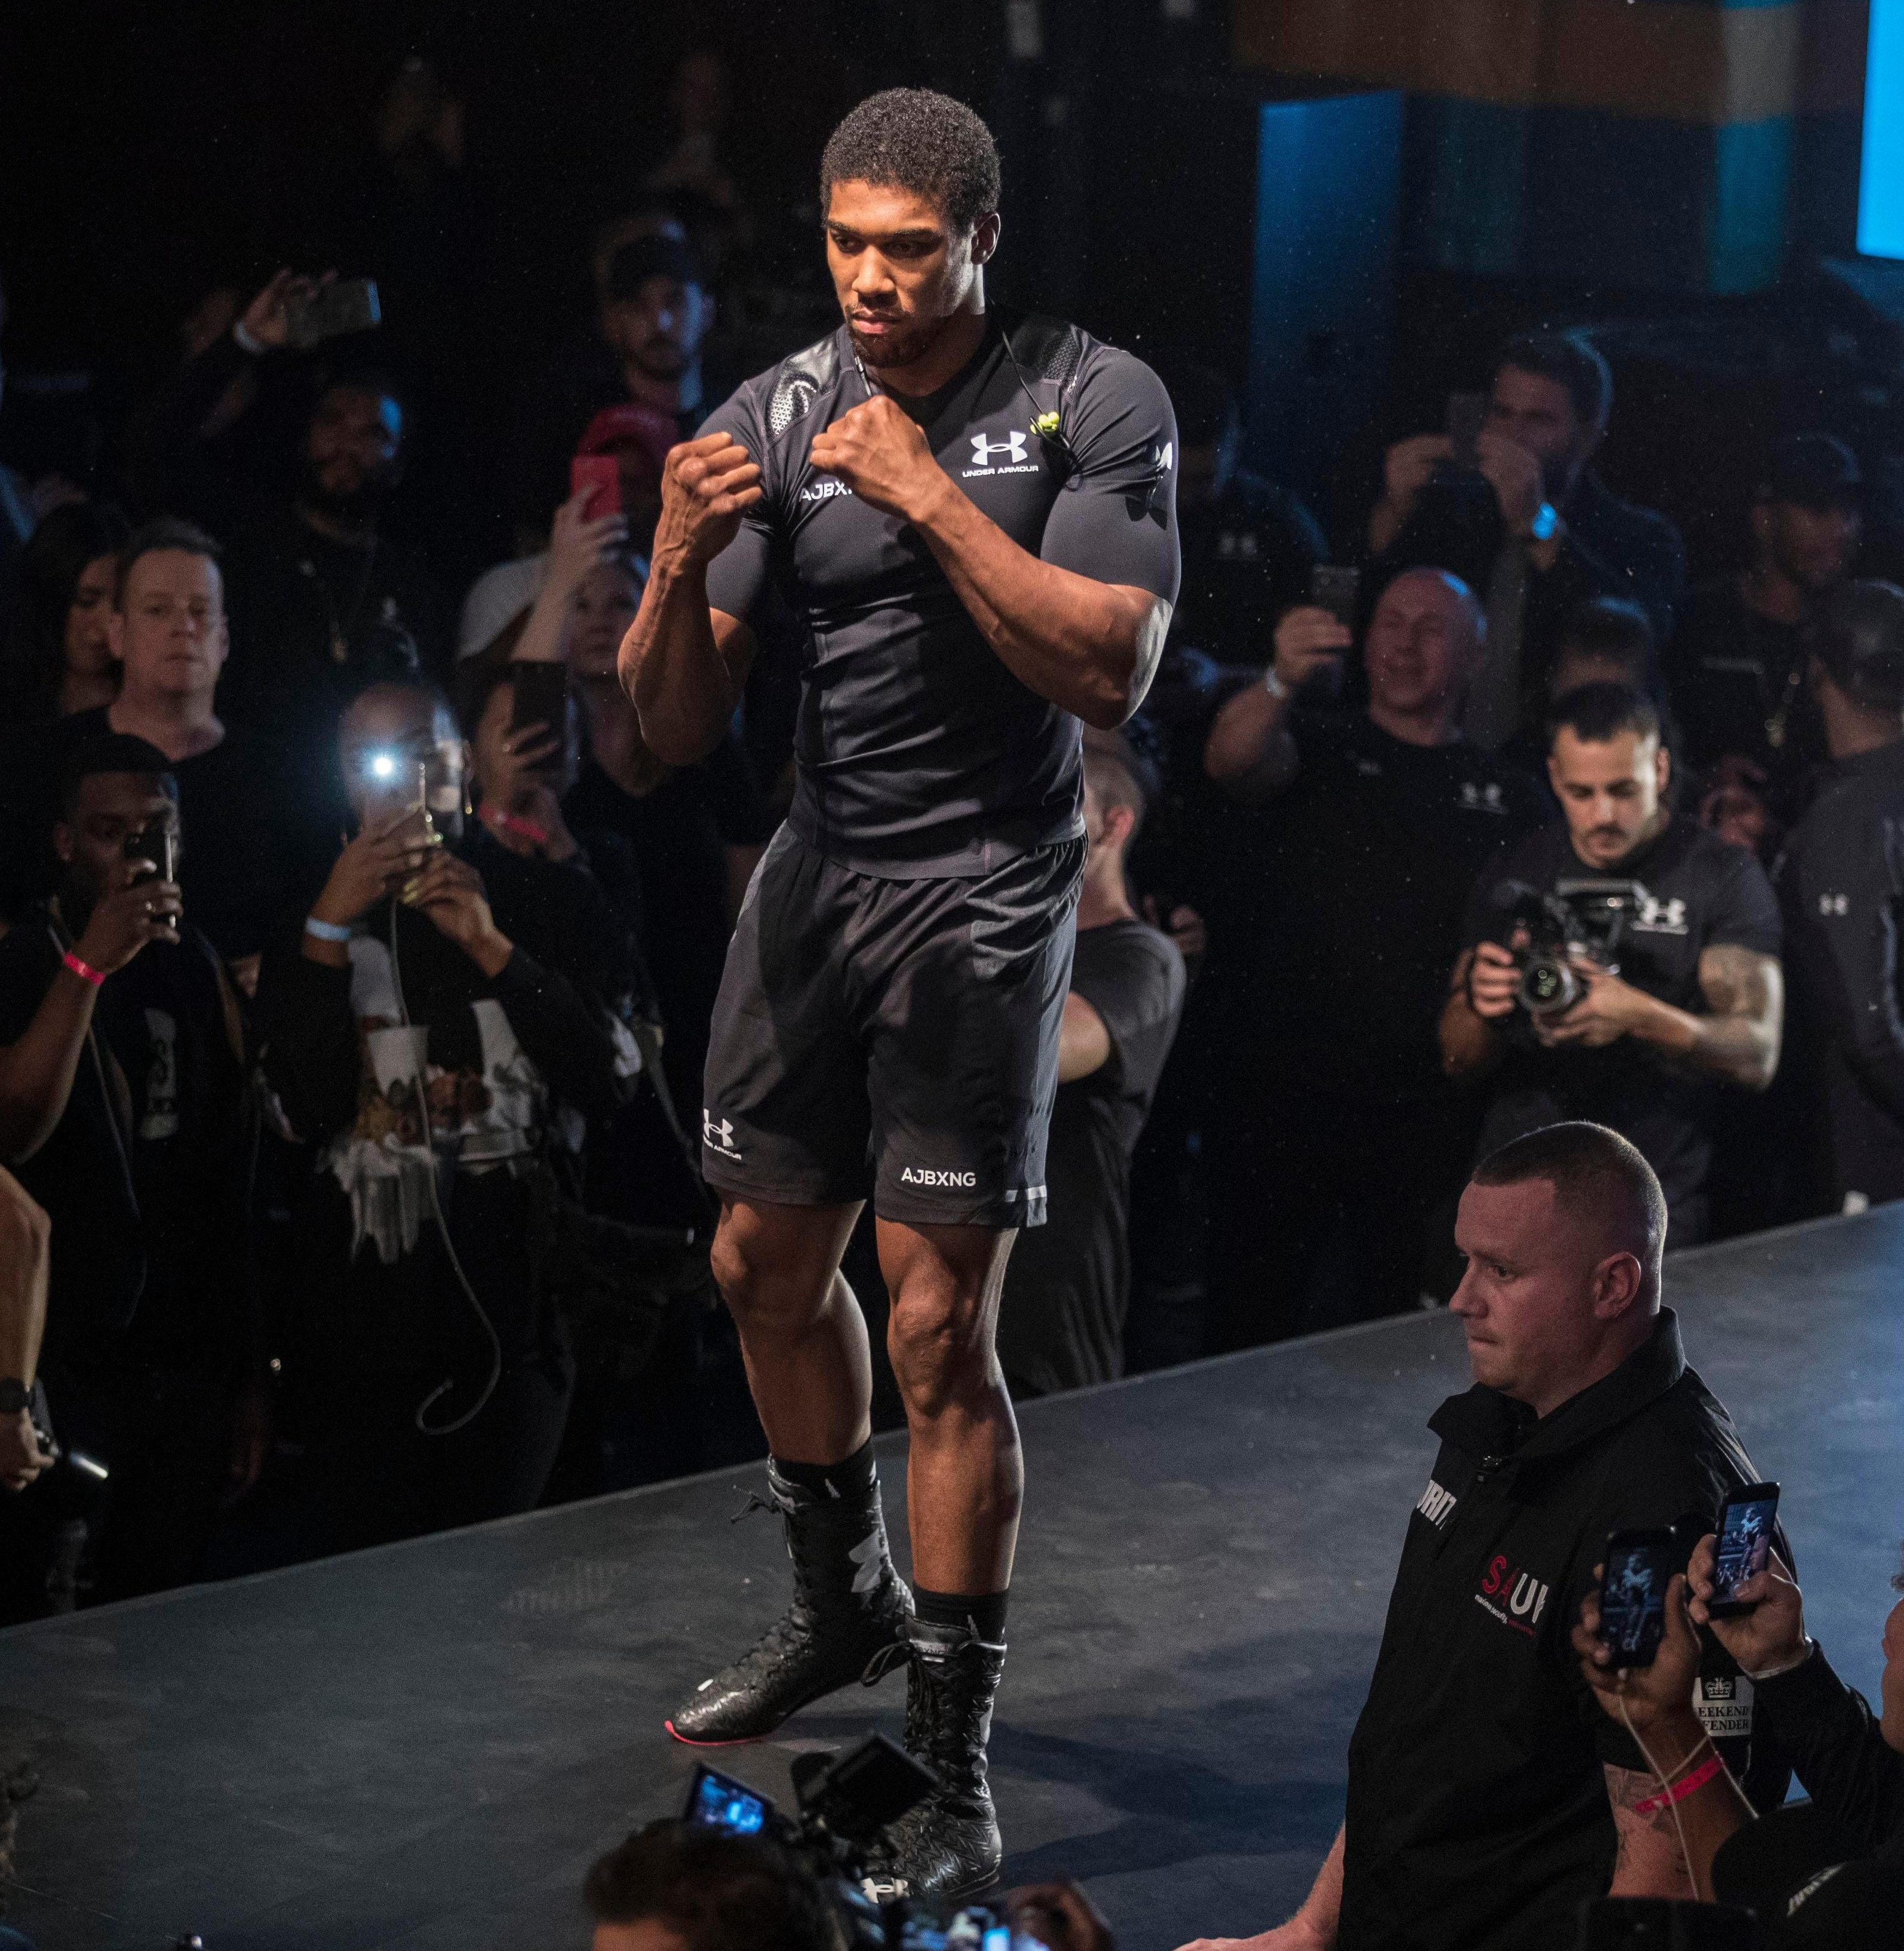 The multiple world champ even got the chance to practice his ring-walk ahead of his big night on Saturday